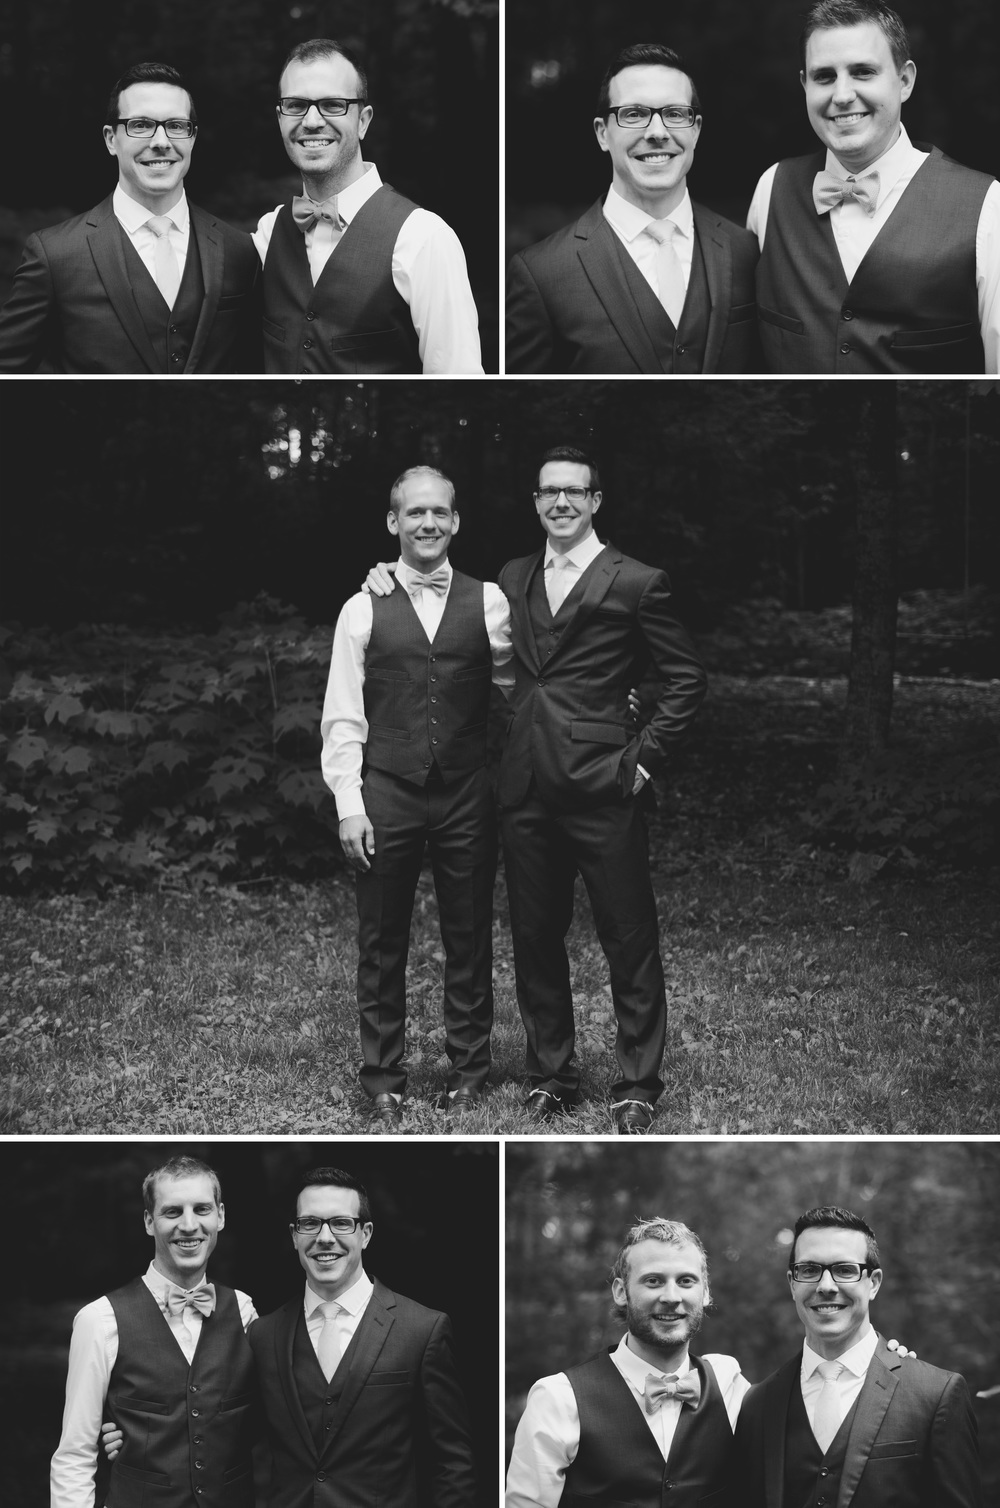 Laura + Mark Wedding Nashville Wedding Photographer Photography Anthology-42 copy.jpg